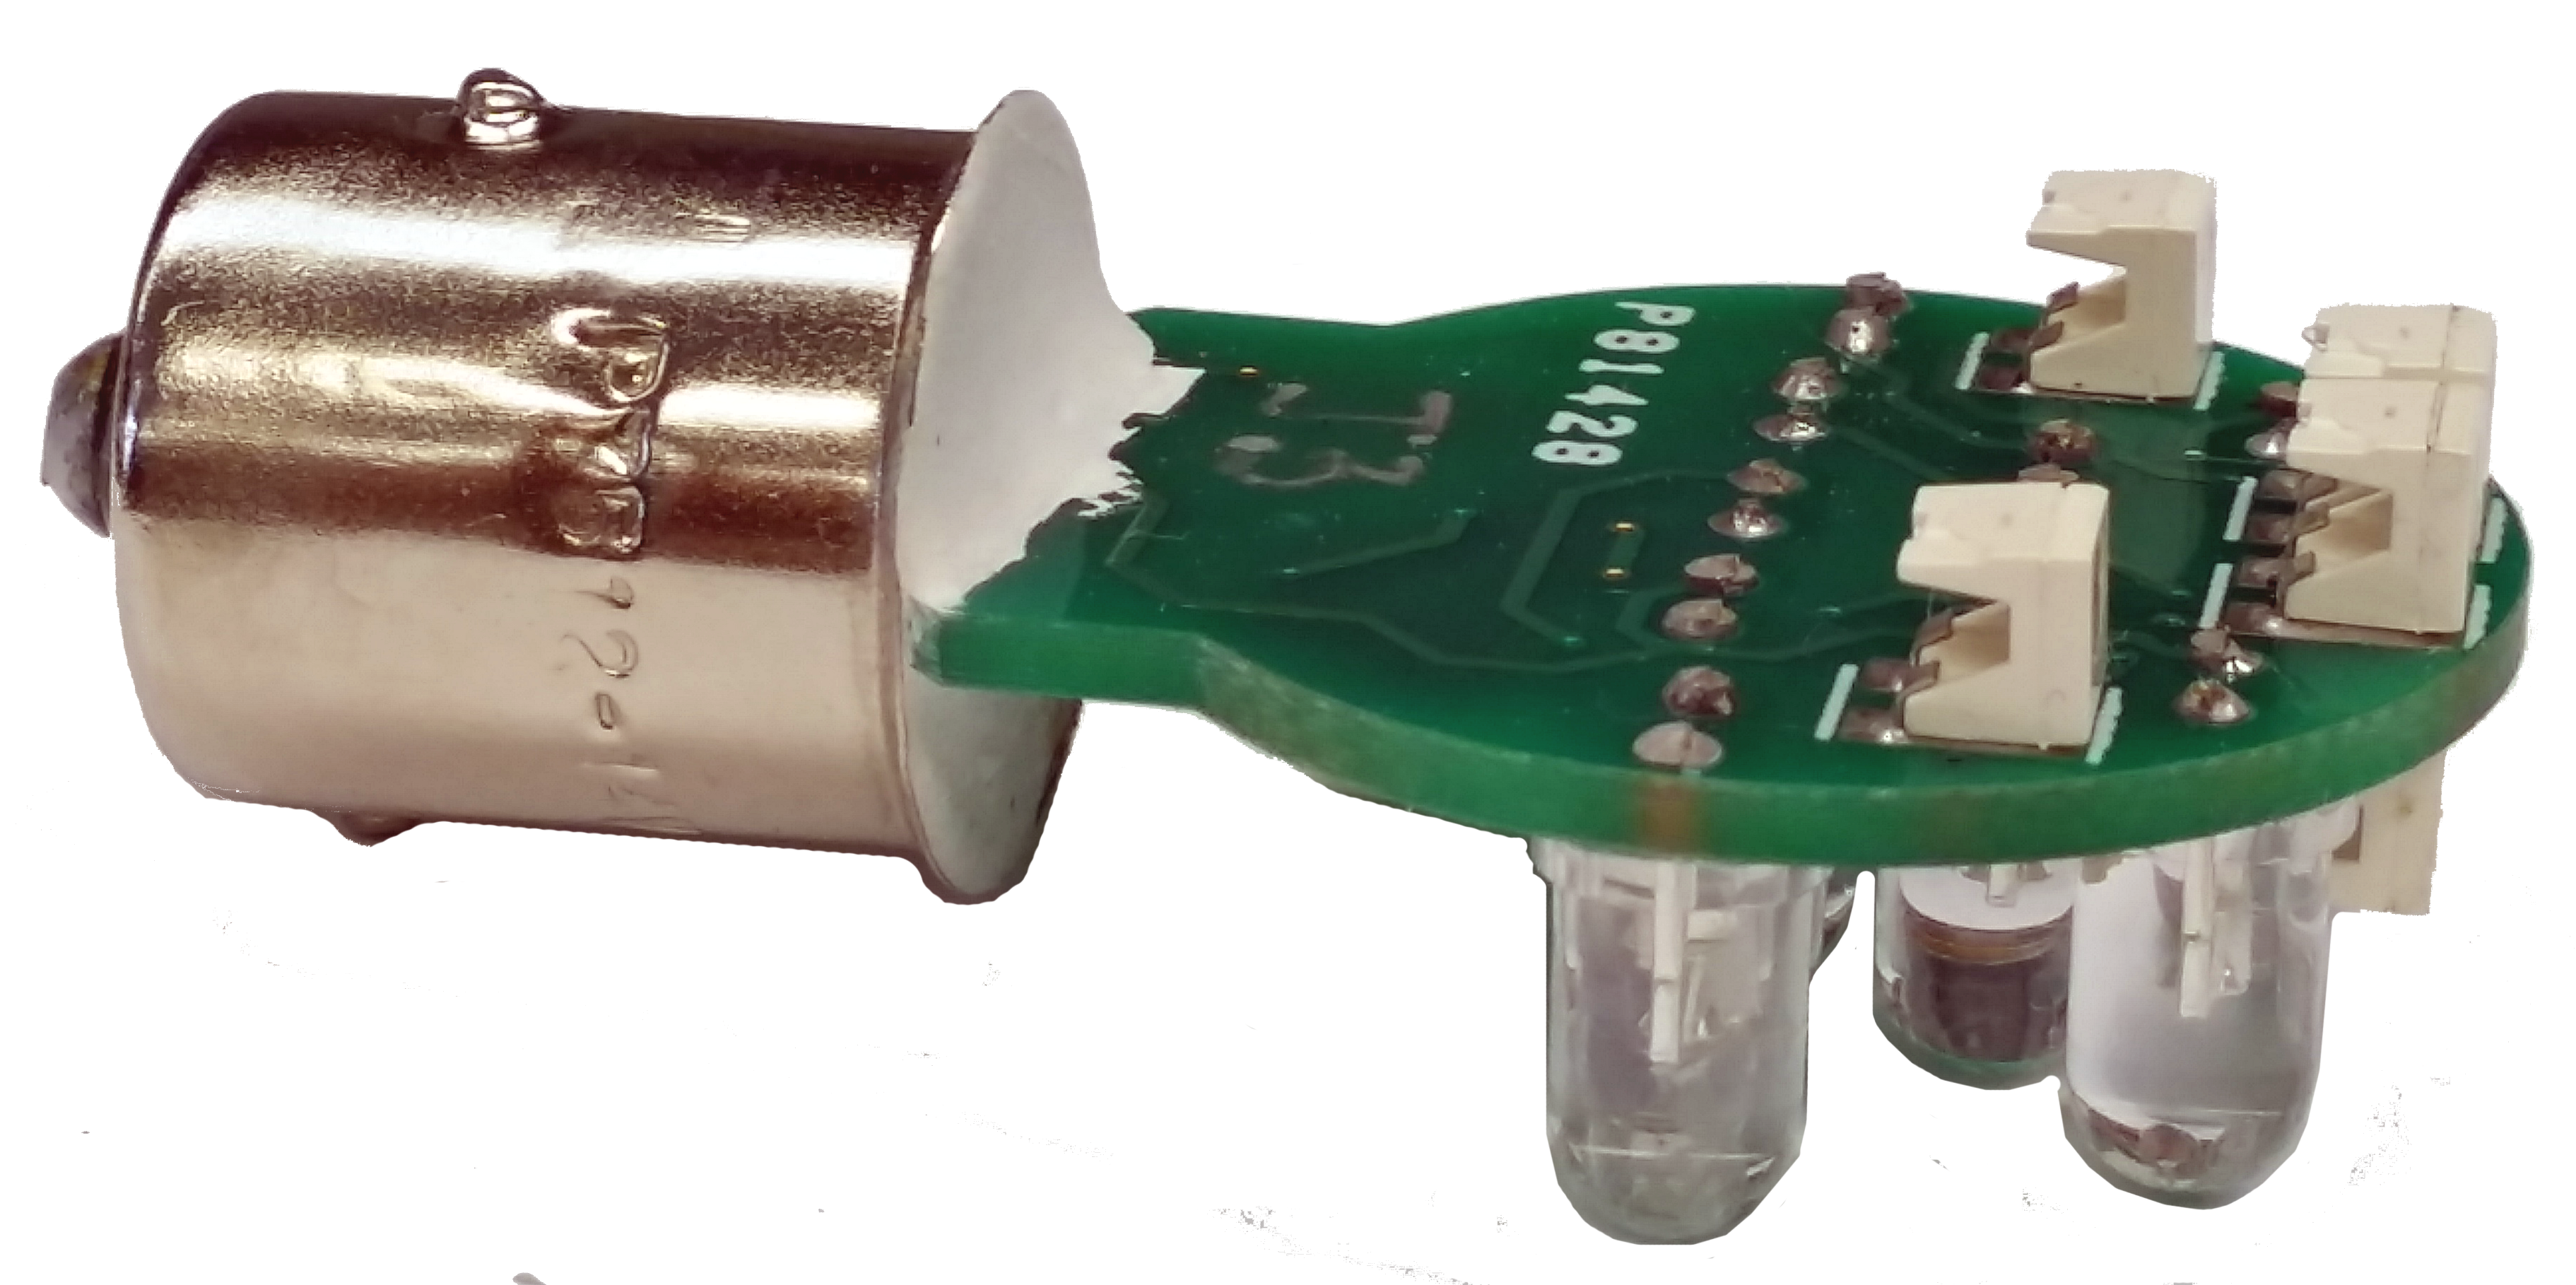 Lighting Basement Washroom Stairs: Wag-Aero 14V Green LED Replacement Paddle Wing Tip Bulb By